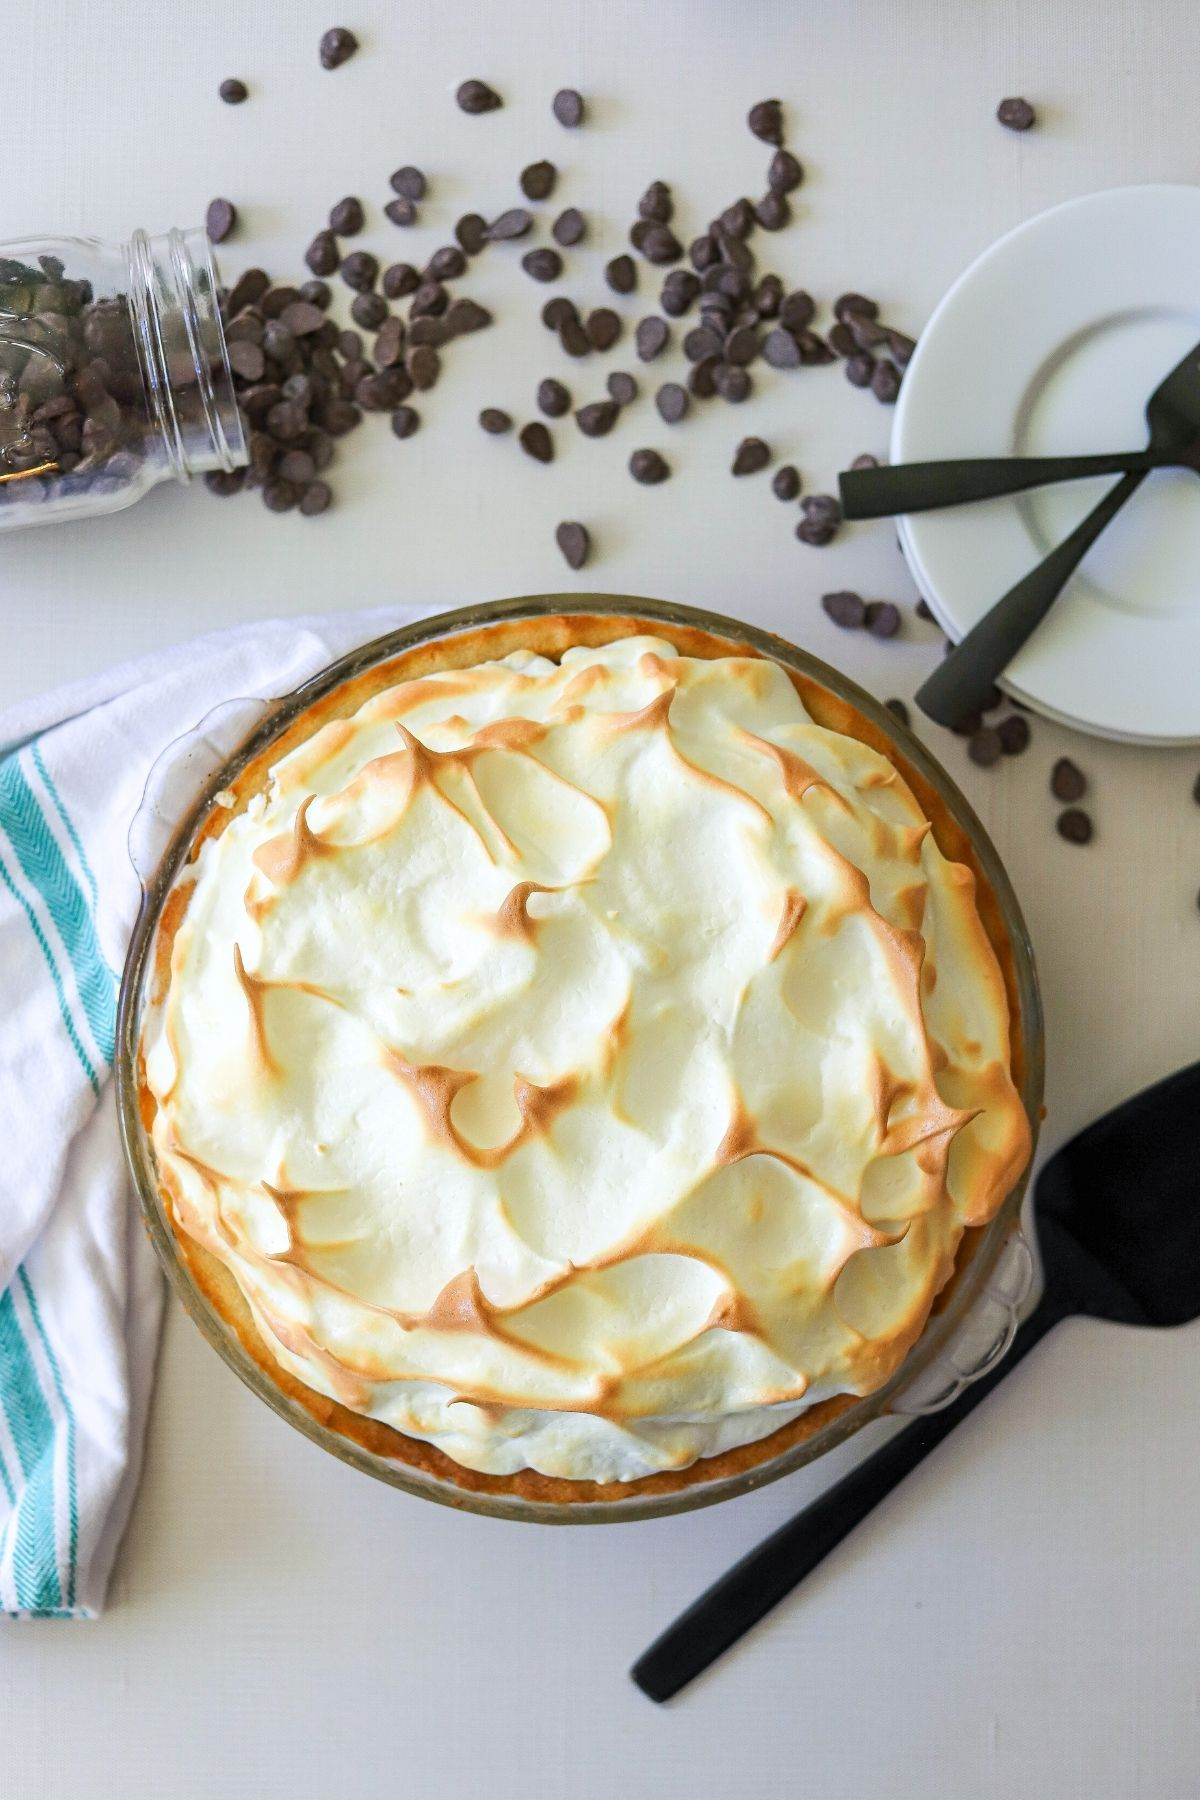 A fully baked pie topped with browned meringue.